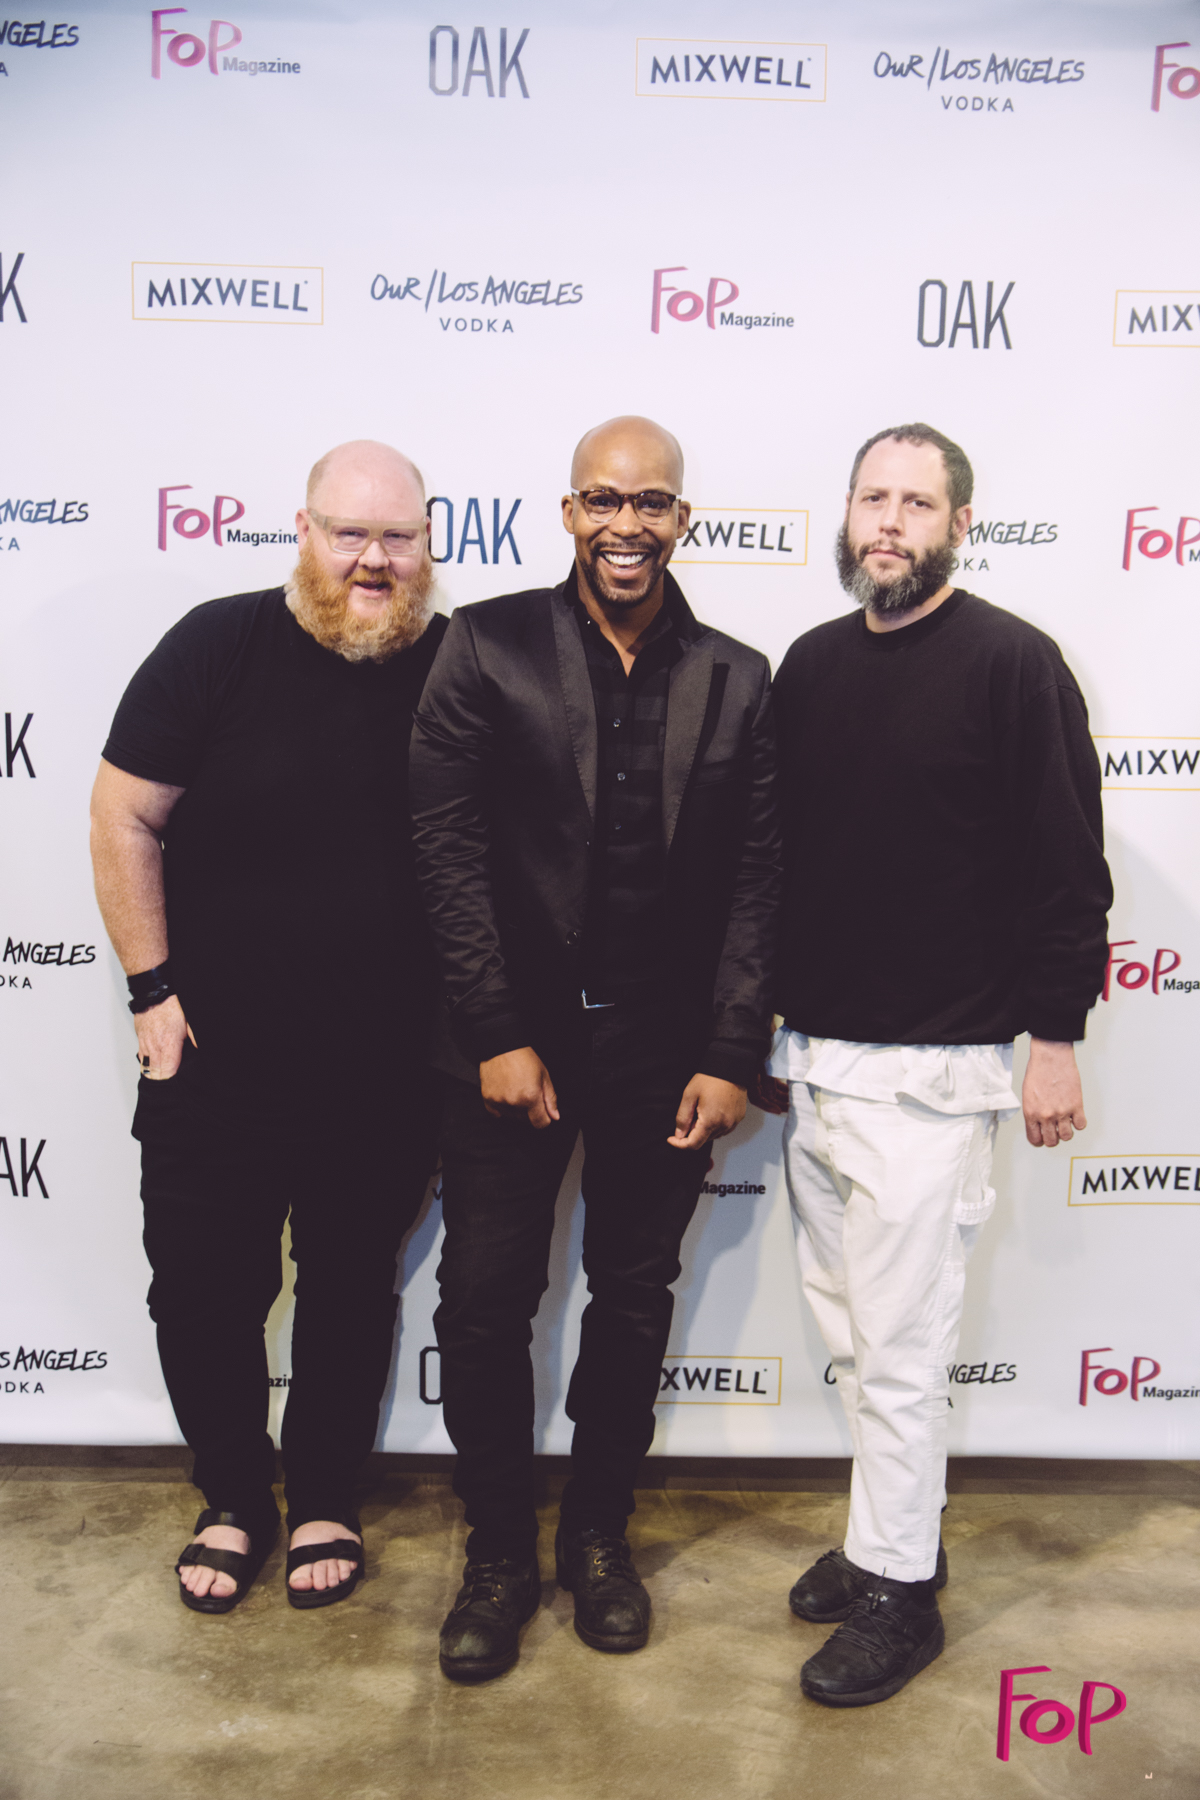 OAK NYC Co-Owners Jeff Madalena & Louis Terline with Fop Magazine Editor-in-Chief, Quentin Fears